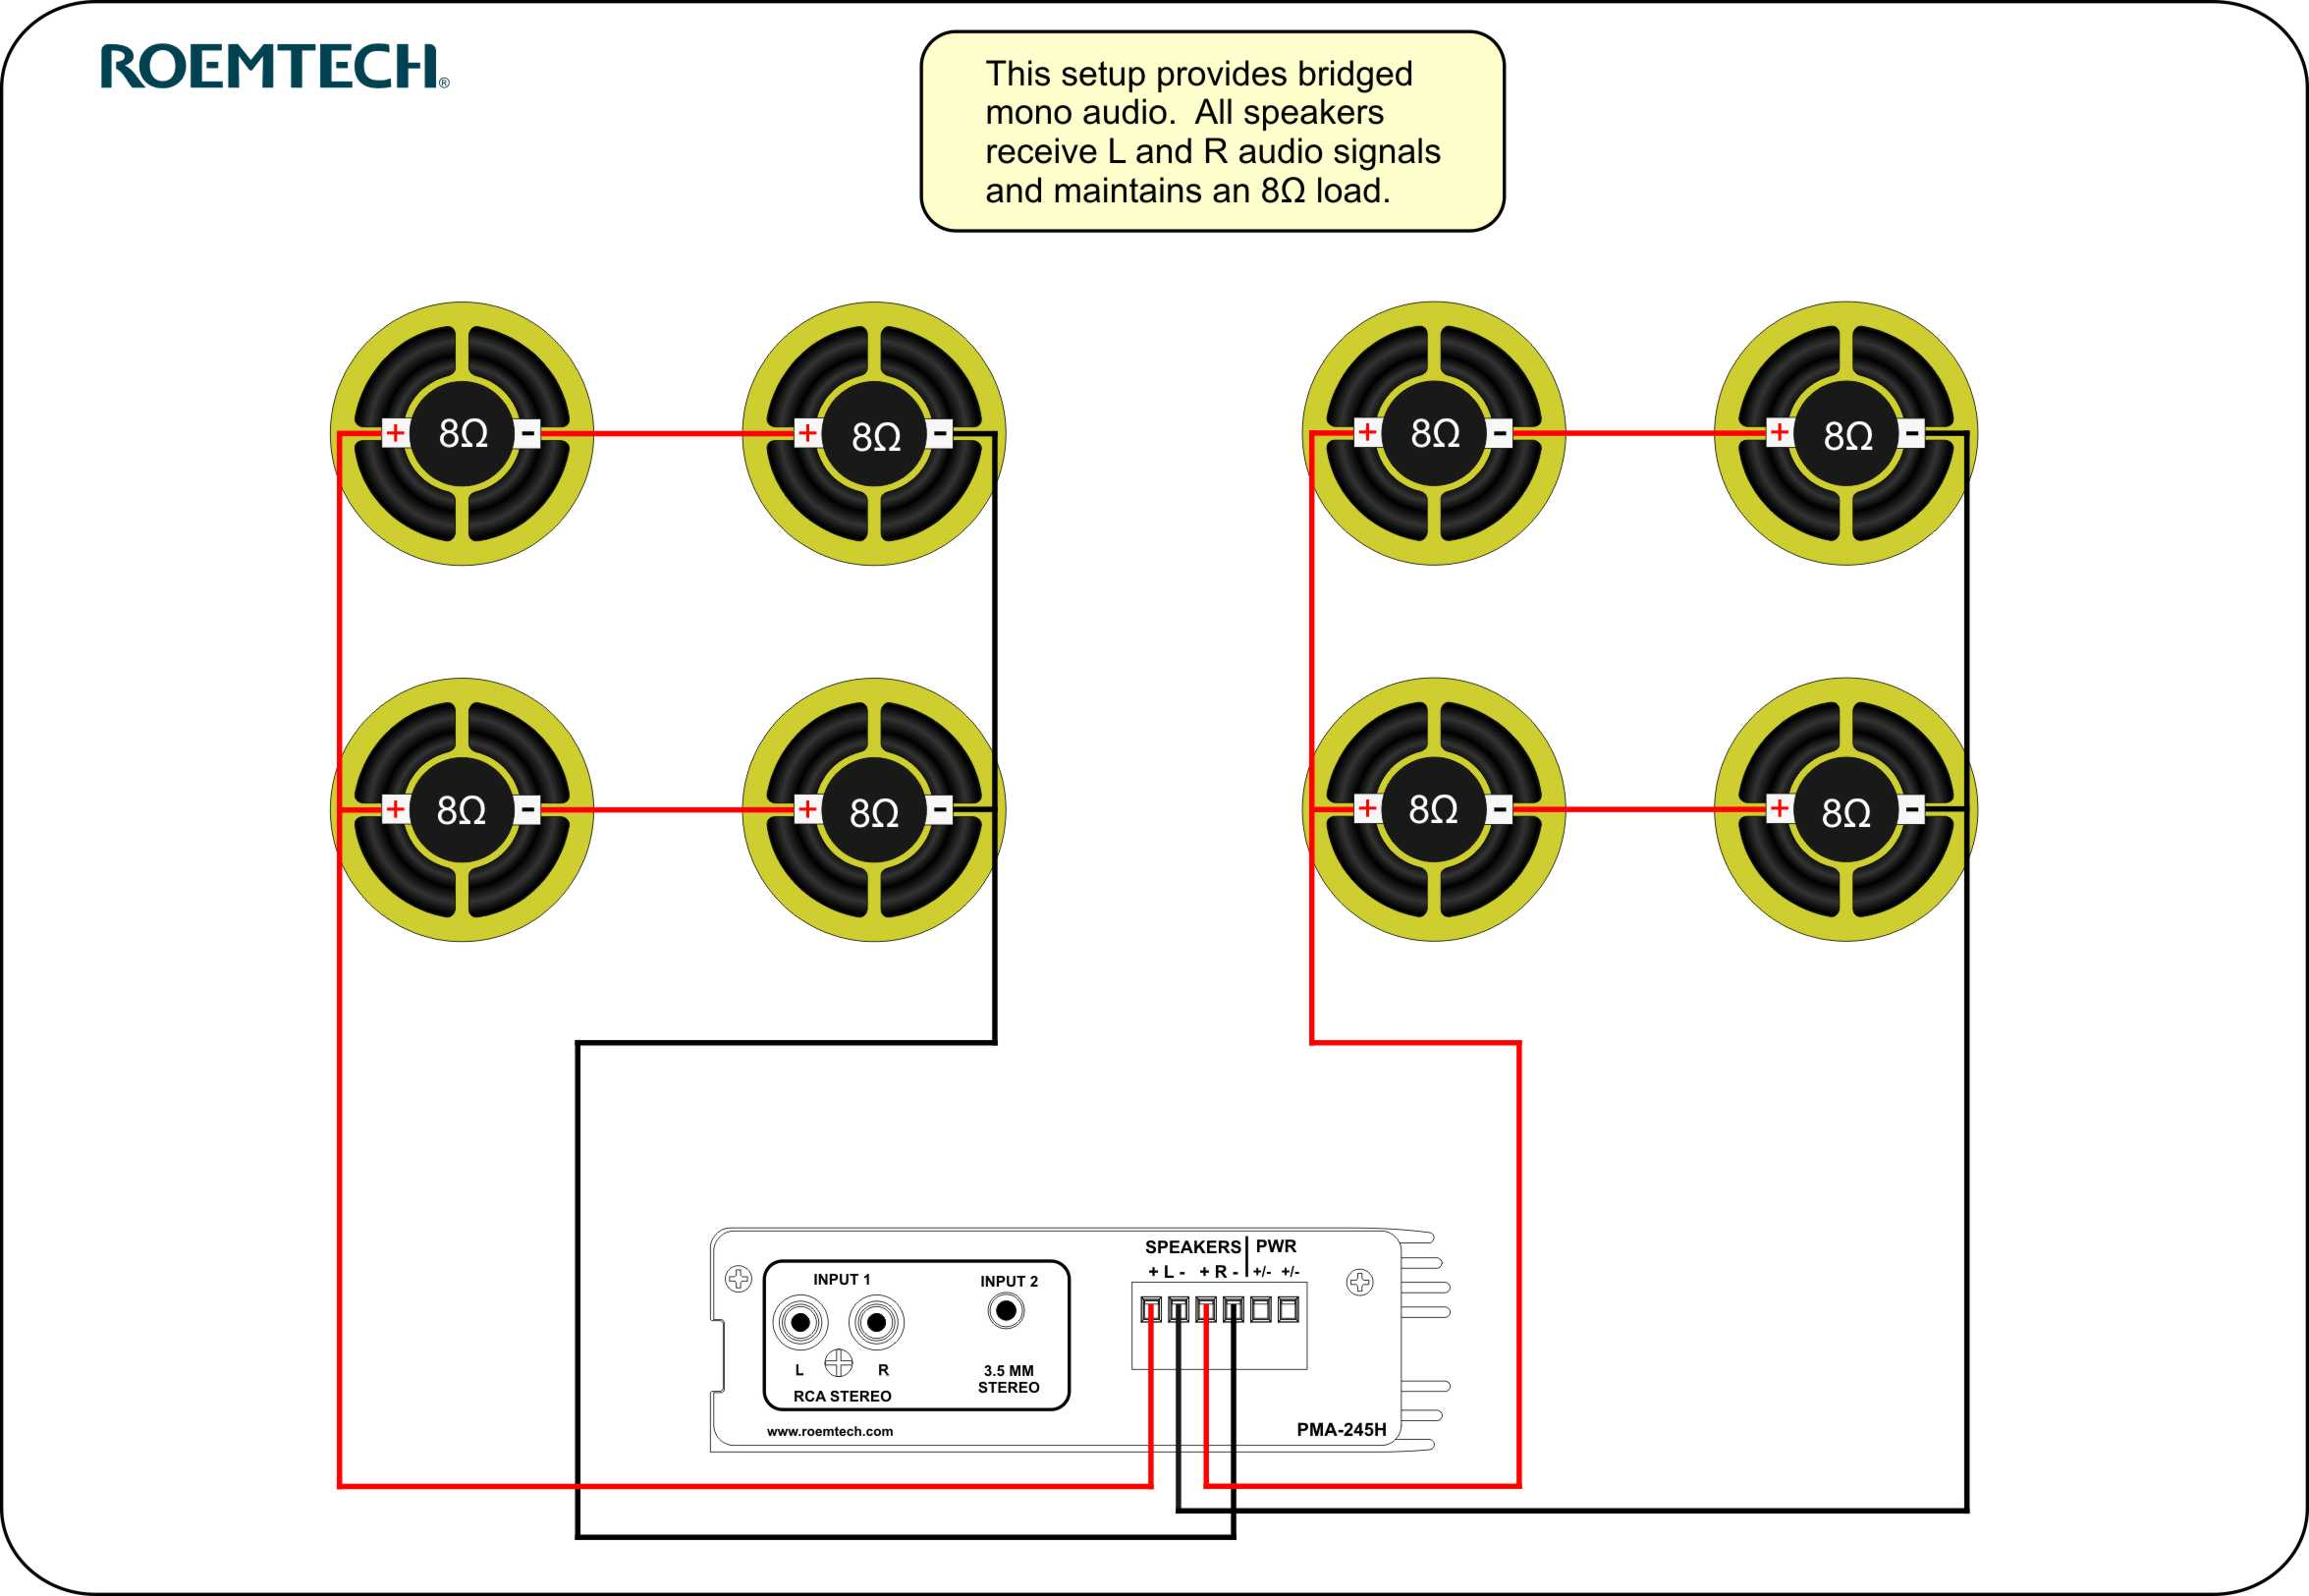 classroom_audio_multiple_speaker classroom audio systems multiple speaker wiring diagram loudspeaker wiring diagram at nearapp.co